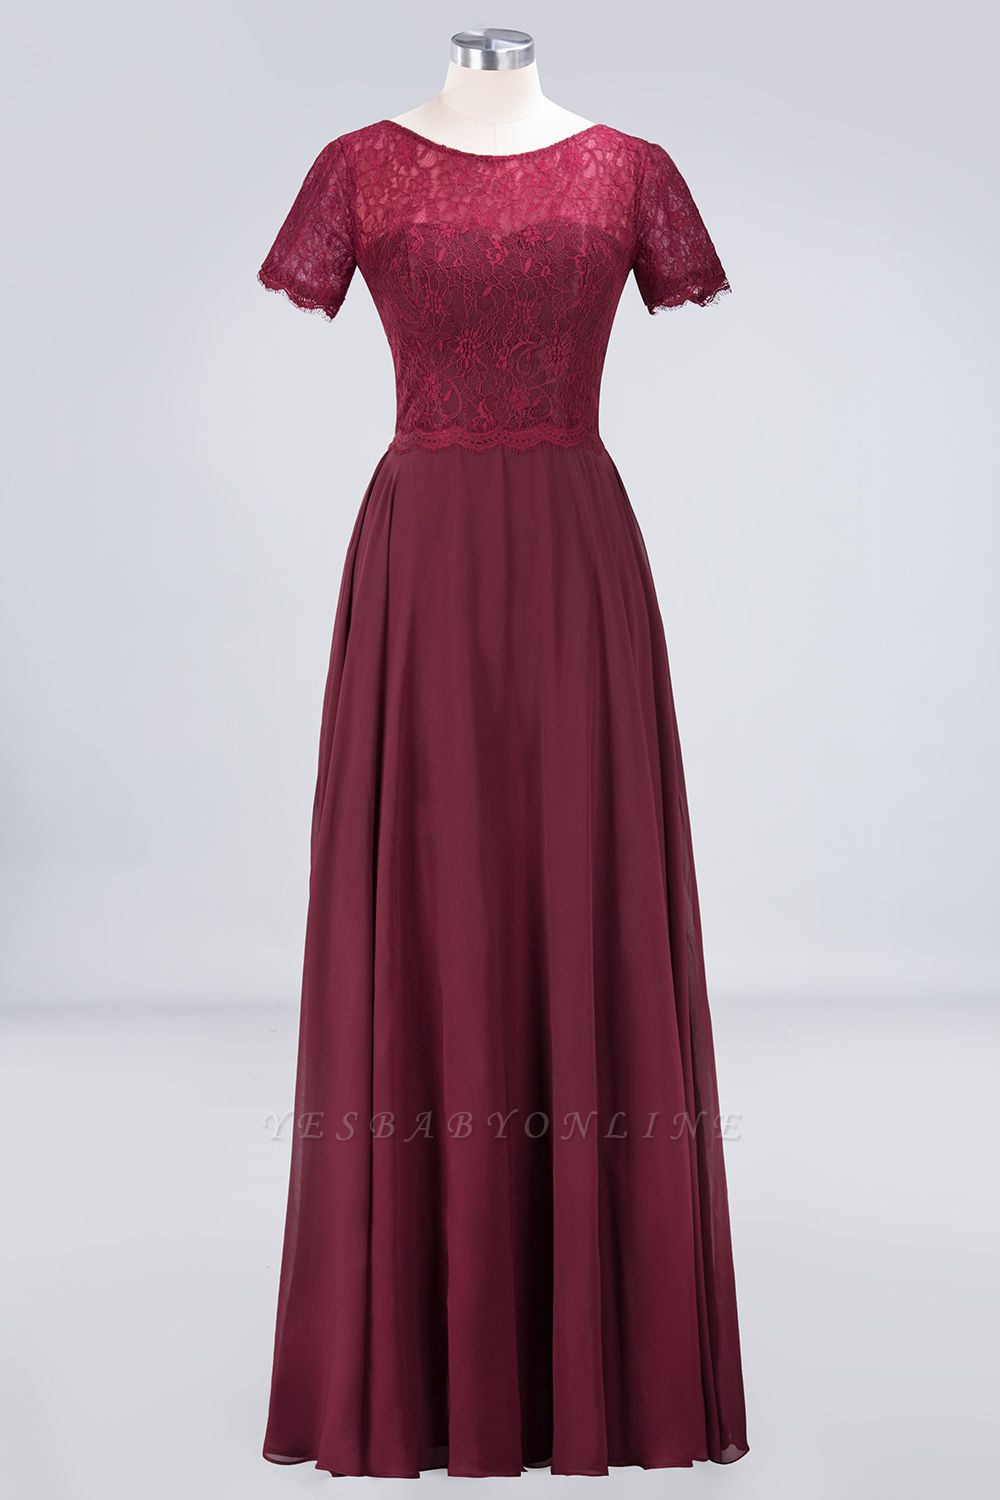 A-Line Round-Neck Short-Sleeves Floor-Length  Lace Bridesmaid Dress